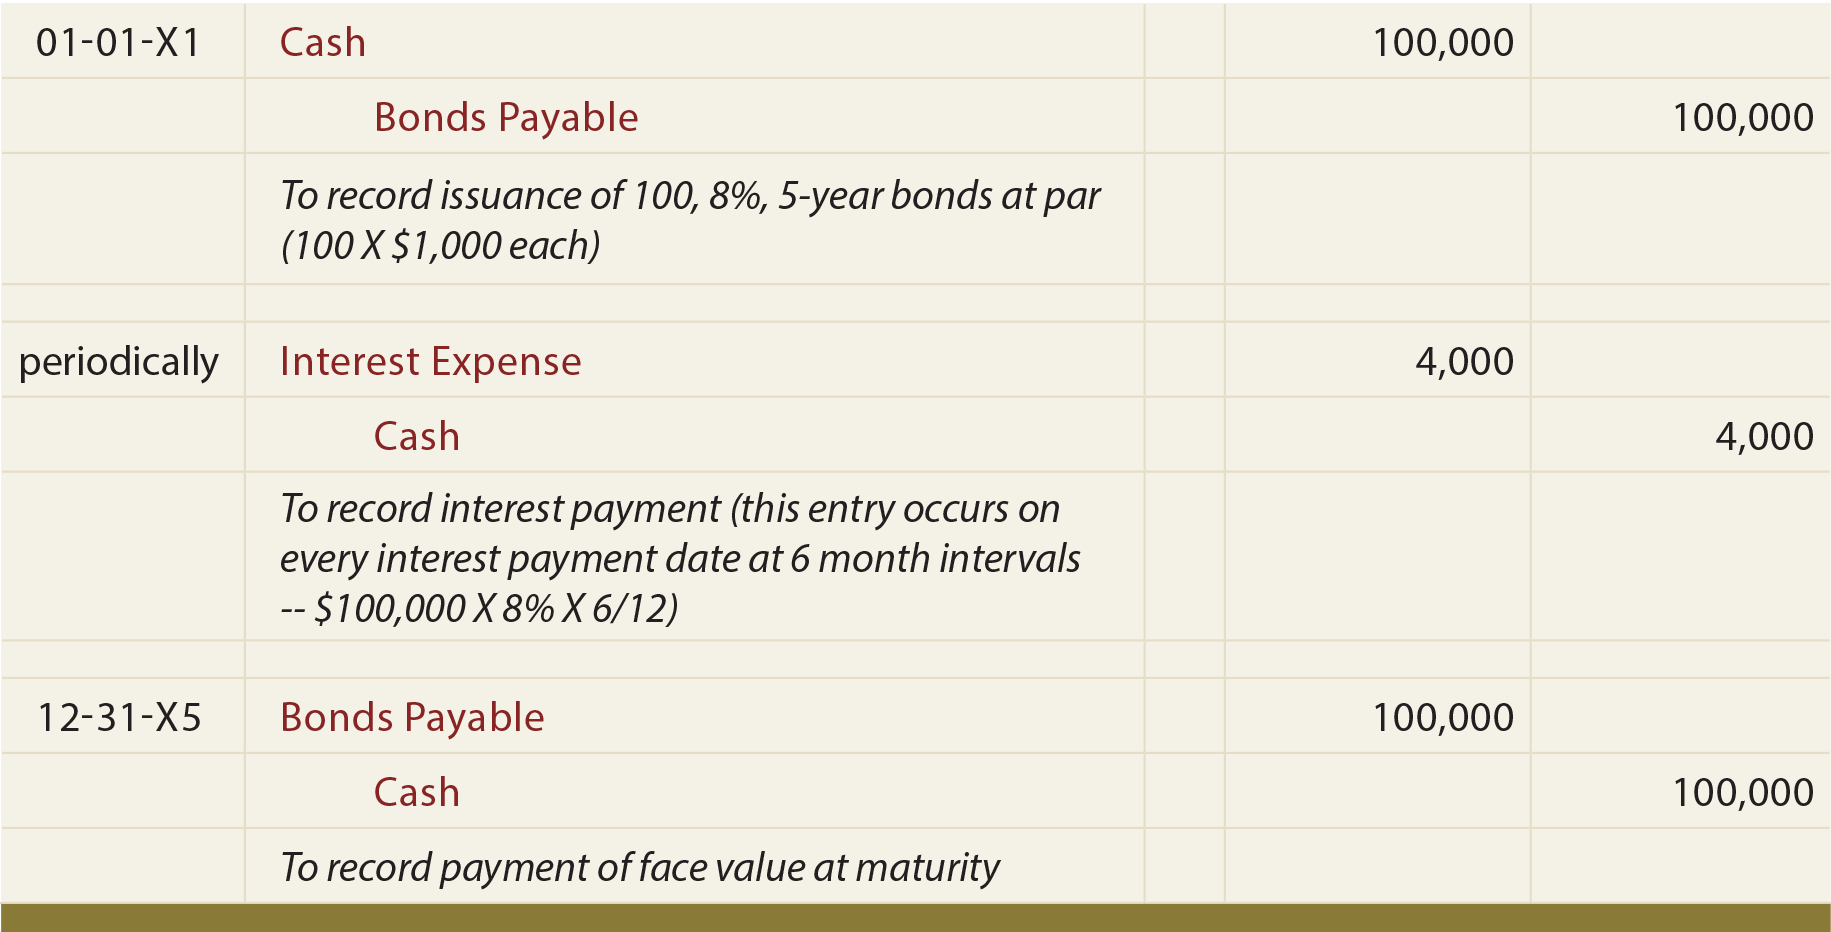 bonds payable coley co Bonds payable—record issuance and discount amortization coley co issued  $30 million face amount of 9%, 10-year bonds on june 1, 2010 the bonds pay.